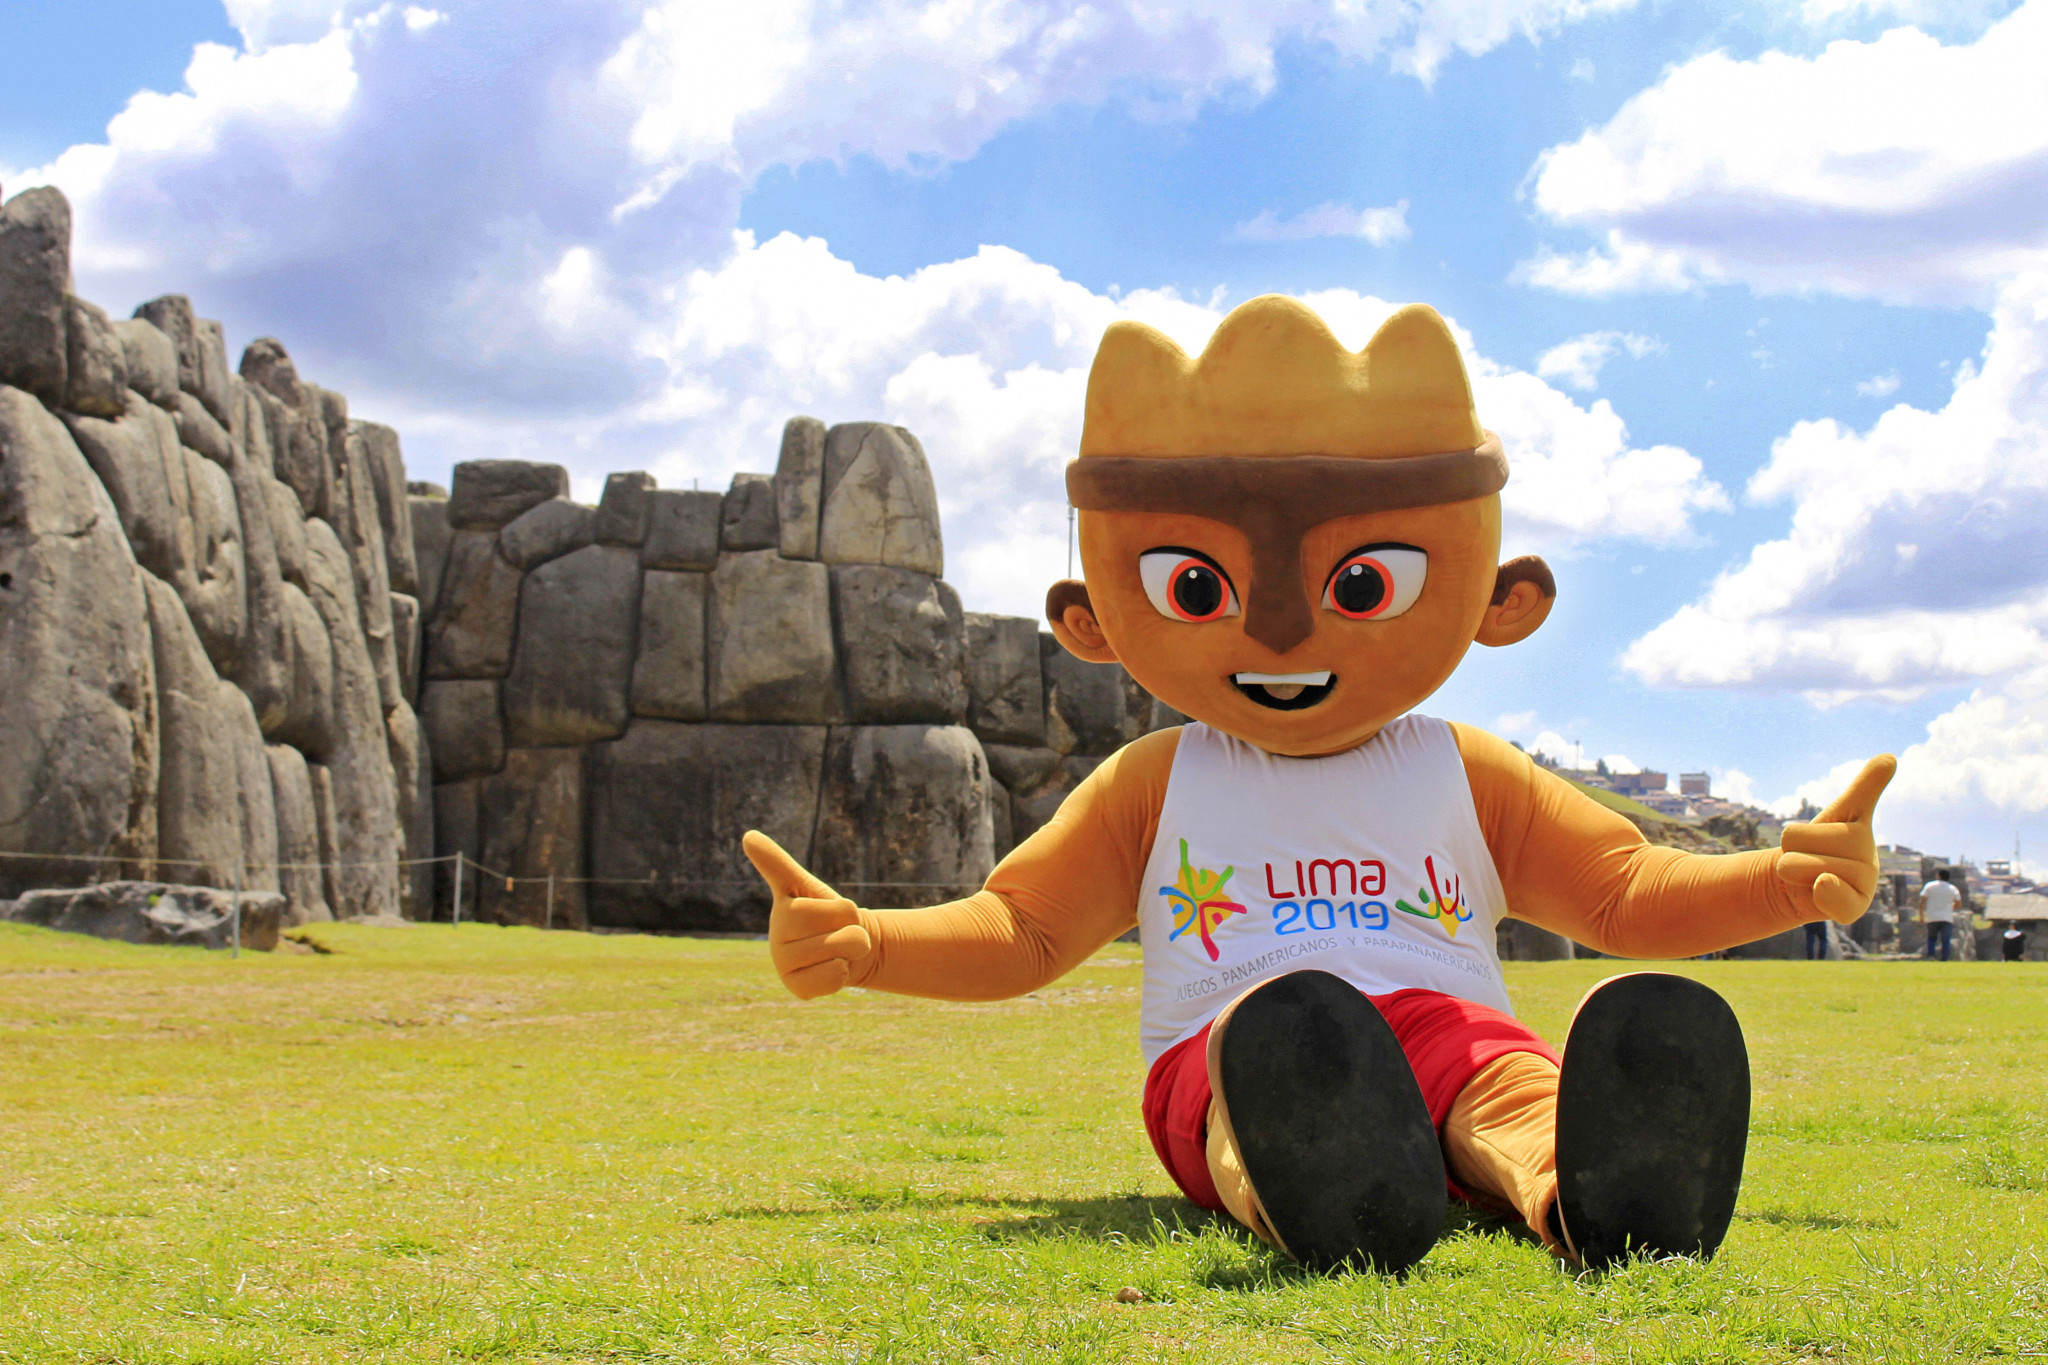 Lima 2019 mascot visits Cusco to spread enthusiasm for Pan American and Parapan American Games